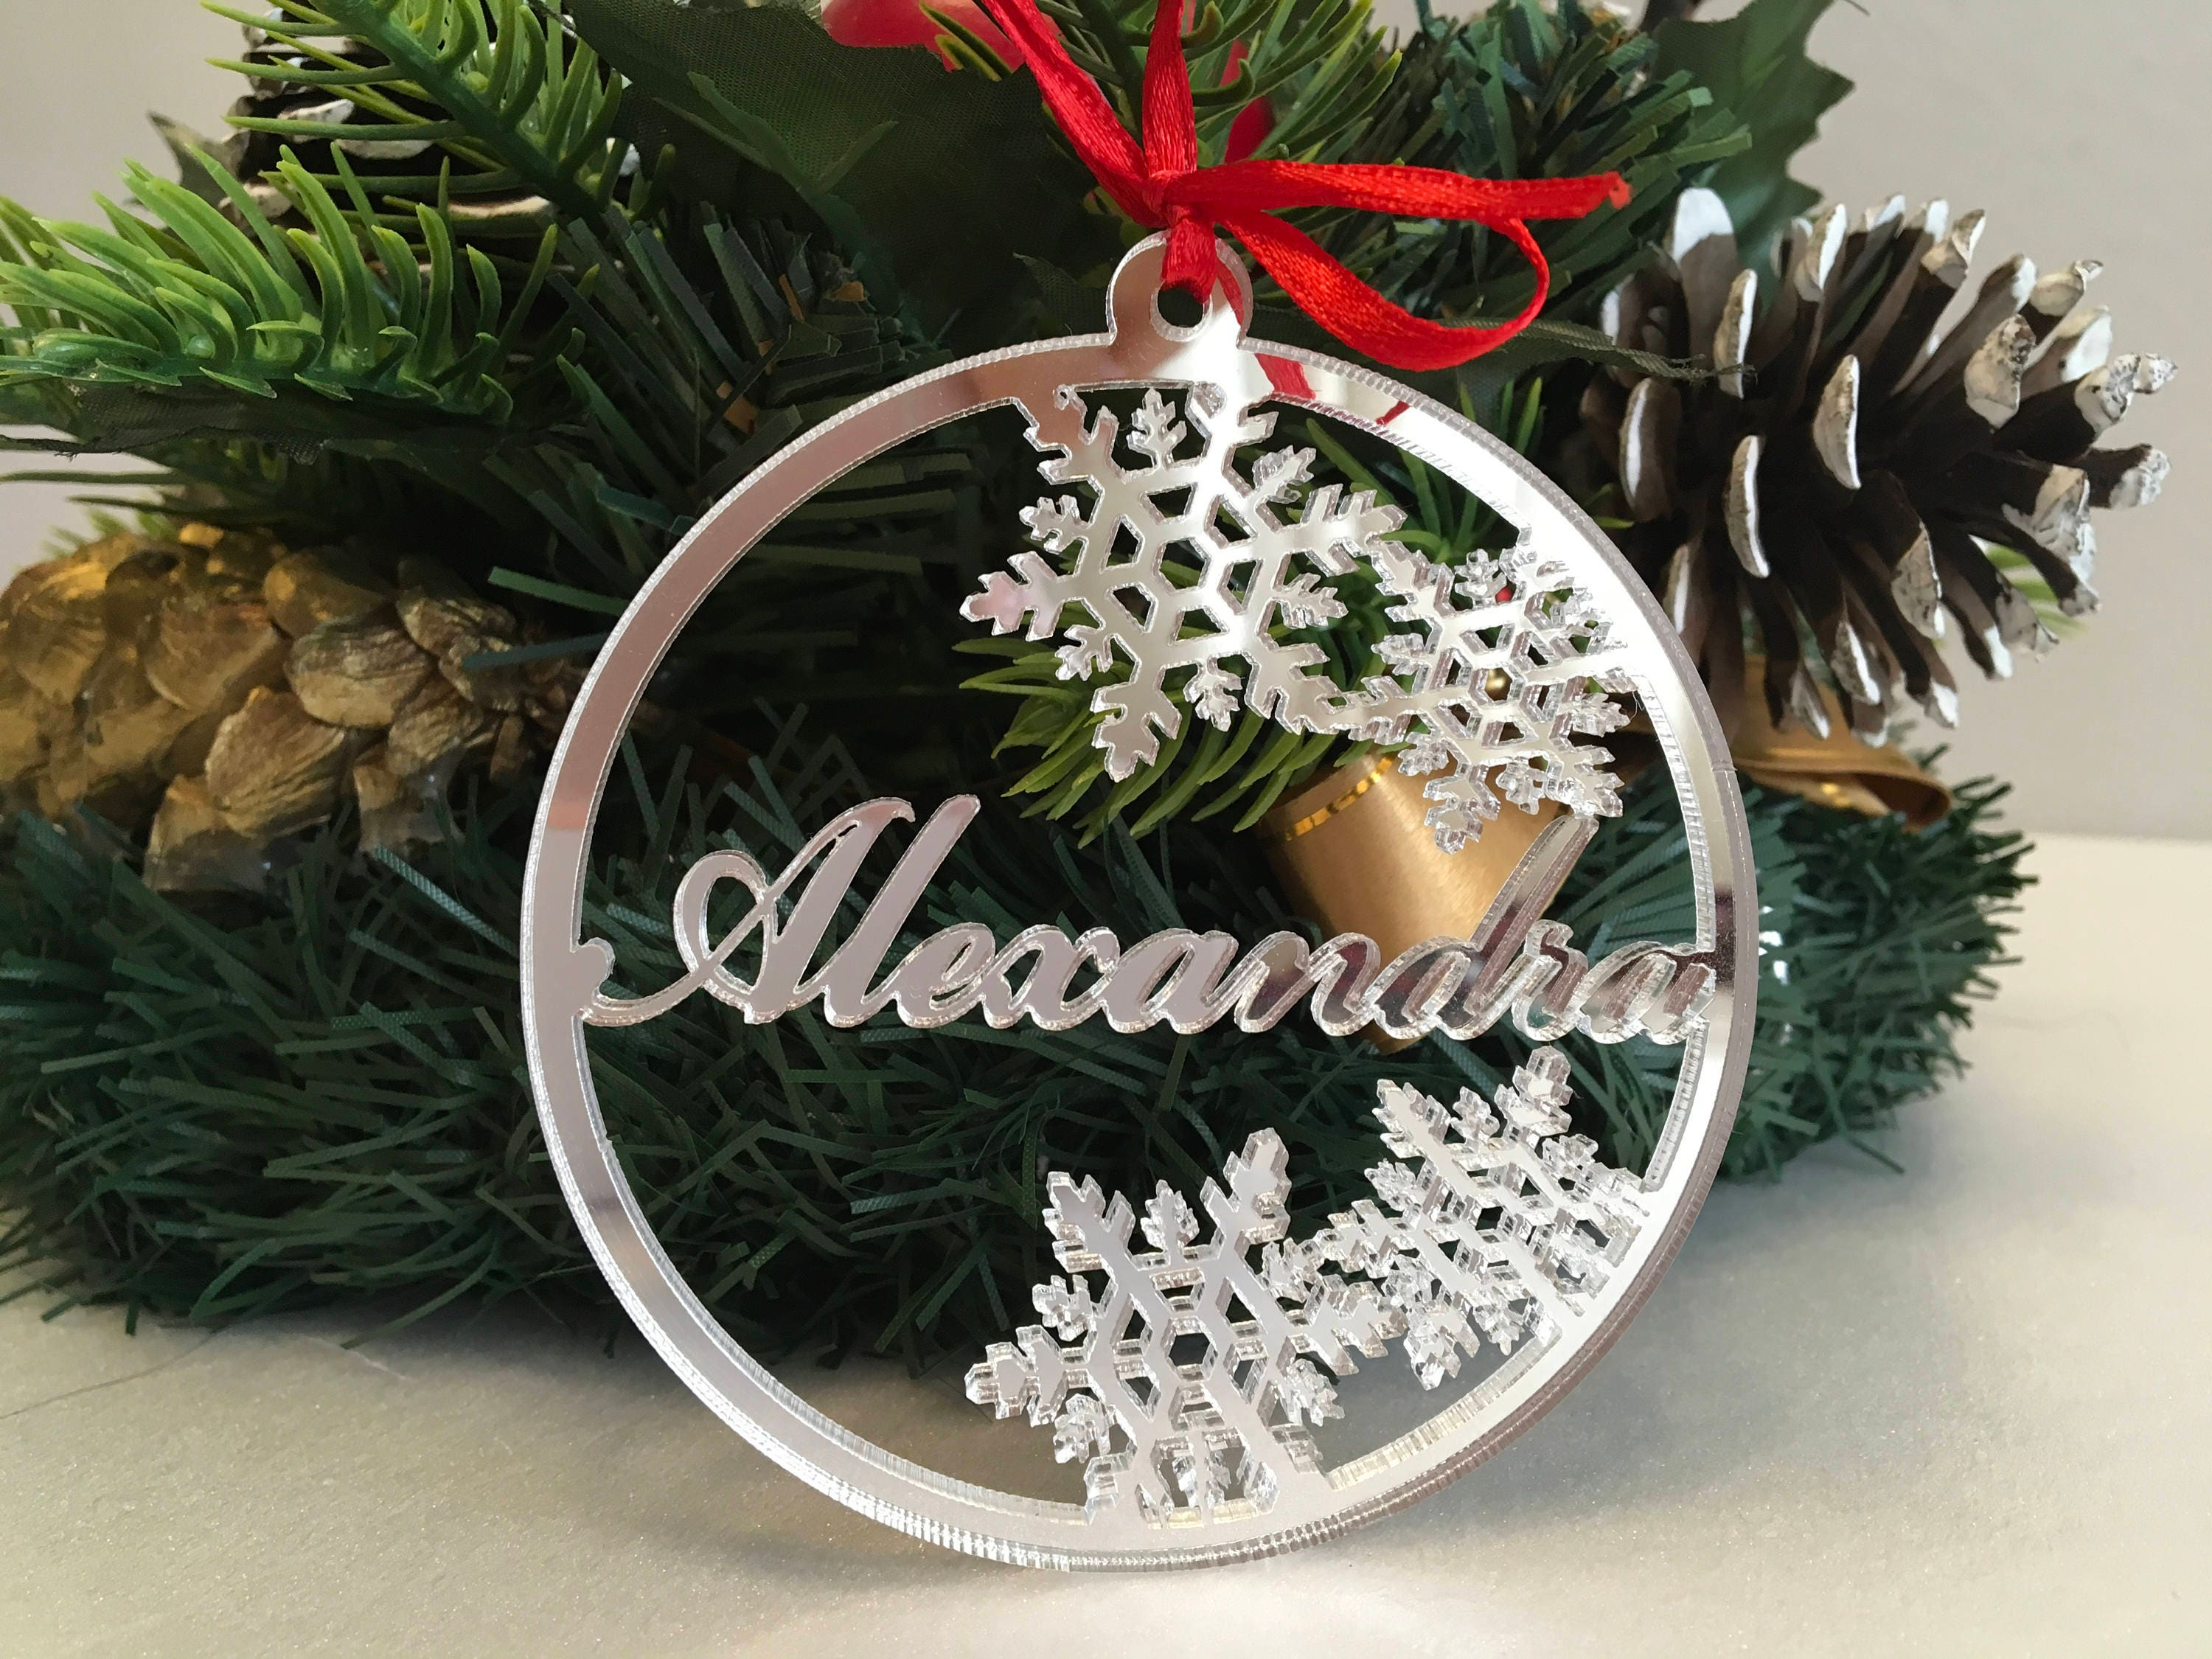 christmas ornaments personalised christmas name baubles silver handmade xmas decorations custom snowflakes name tree decorations xmas gifts - Christmas Tree Decorations Names